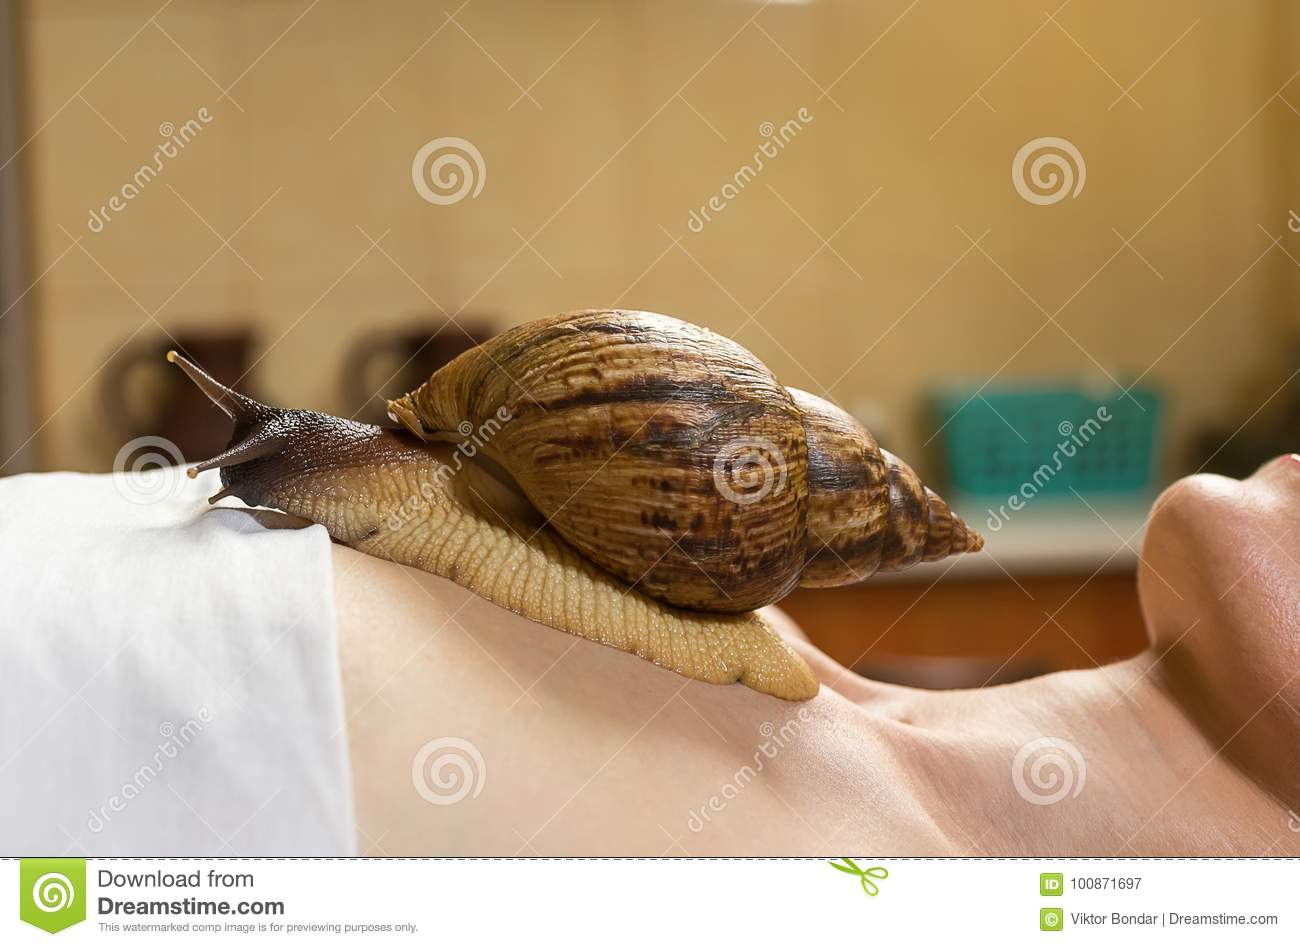 Achatina snails in cosmetology: how to use 37